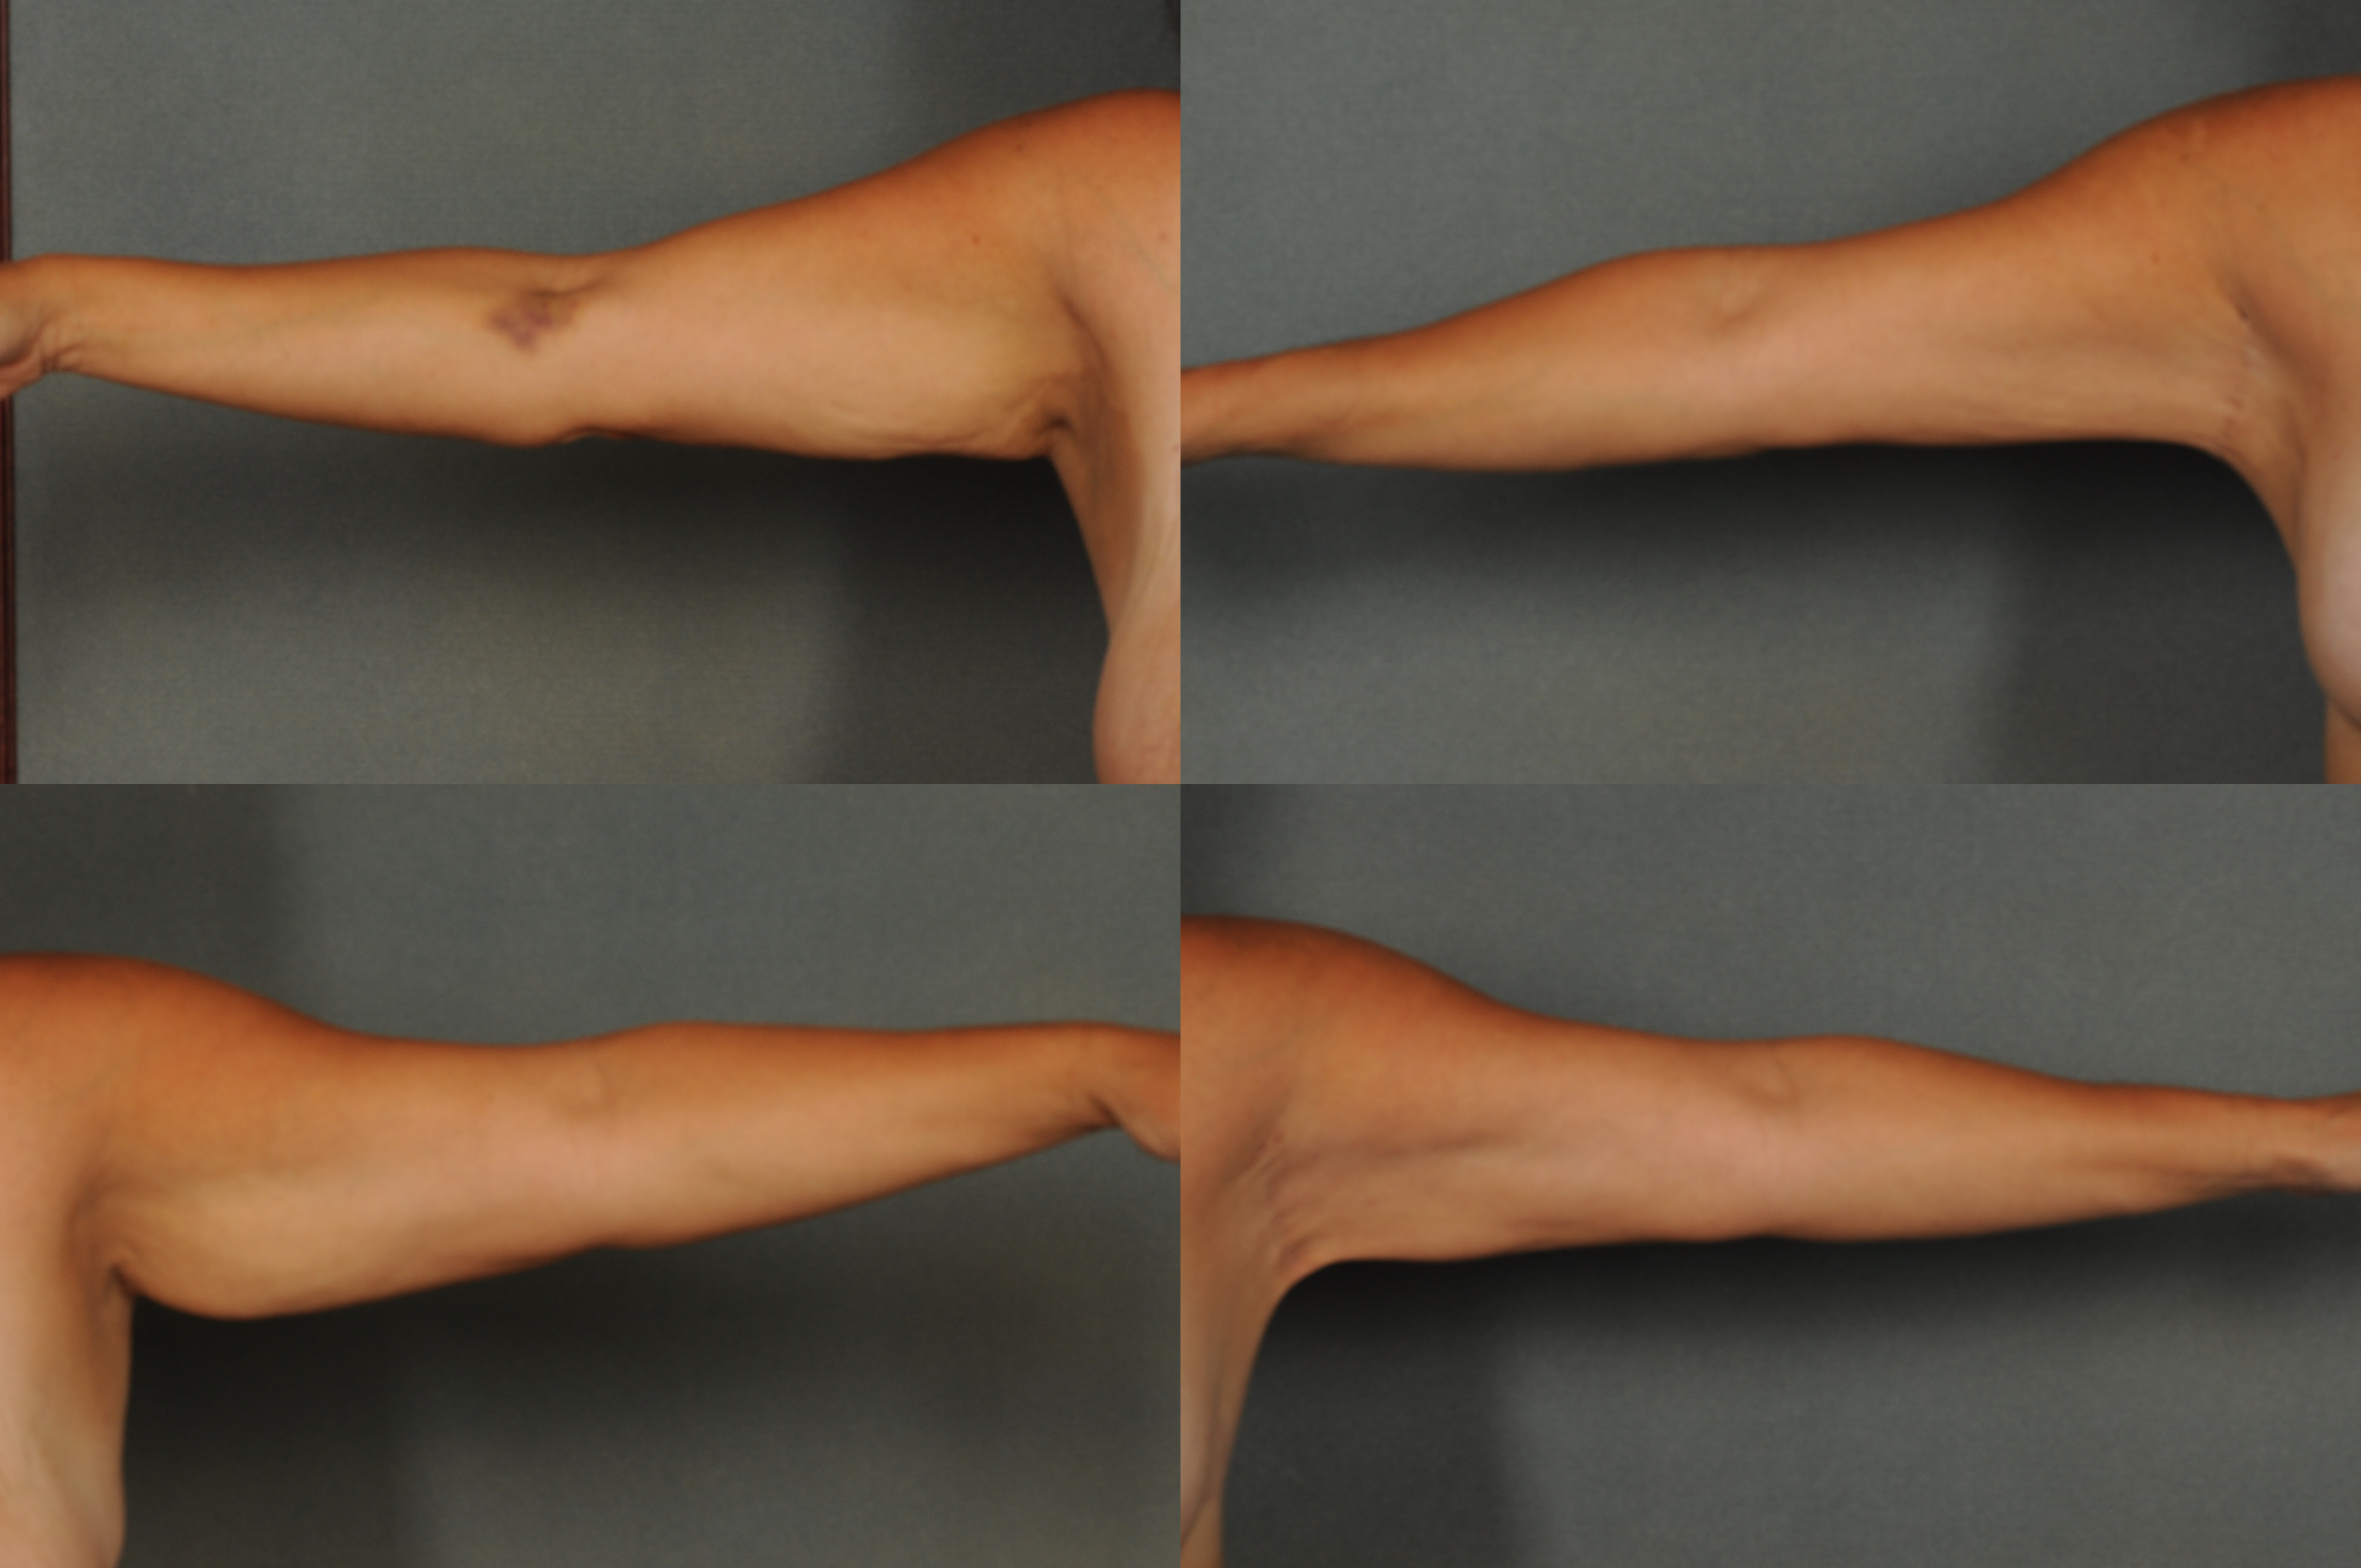 Arm Lift with Dr. Ellen, in Bloomfield Hills, MI